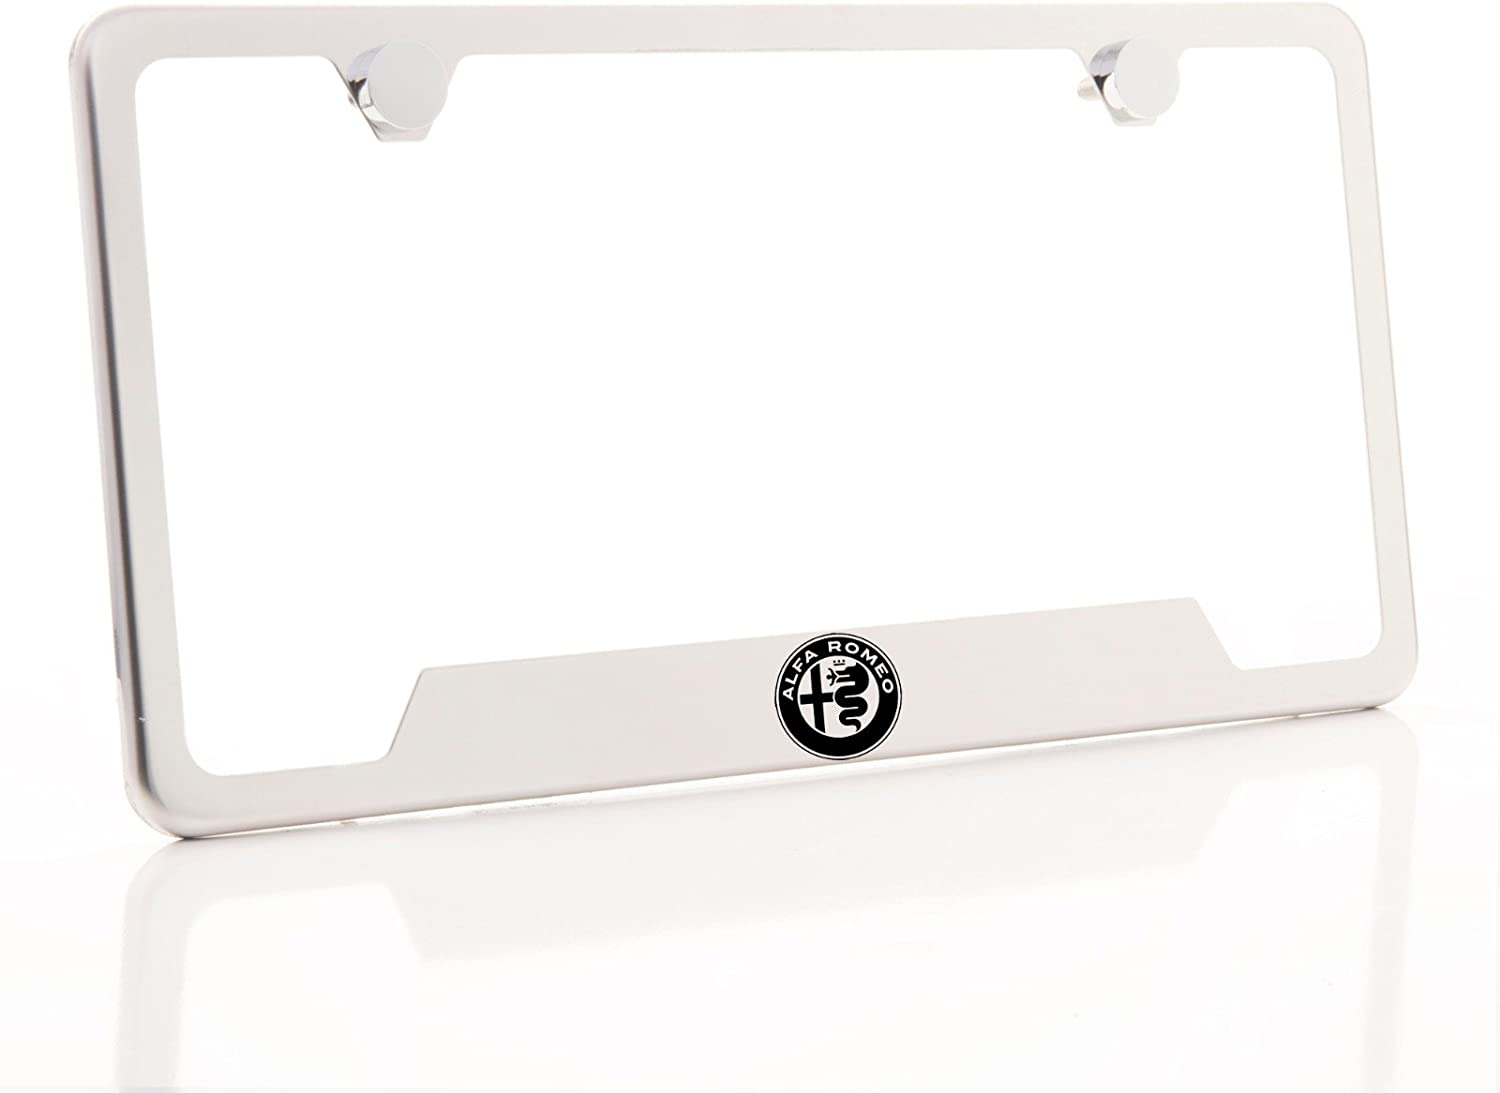 KA Depot One Fit Alfa Romeo Logo on Chrome Bottom Cut Out Stainless Steel License Plate Frame Holder Front Or Rear Bracket Laser Etched Black LetteringAluminum Screw Cap